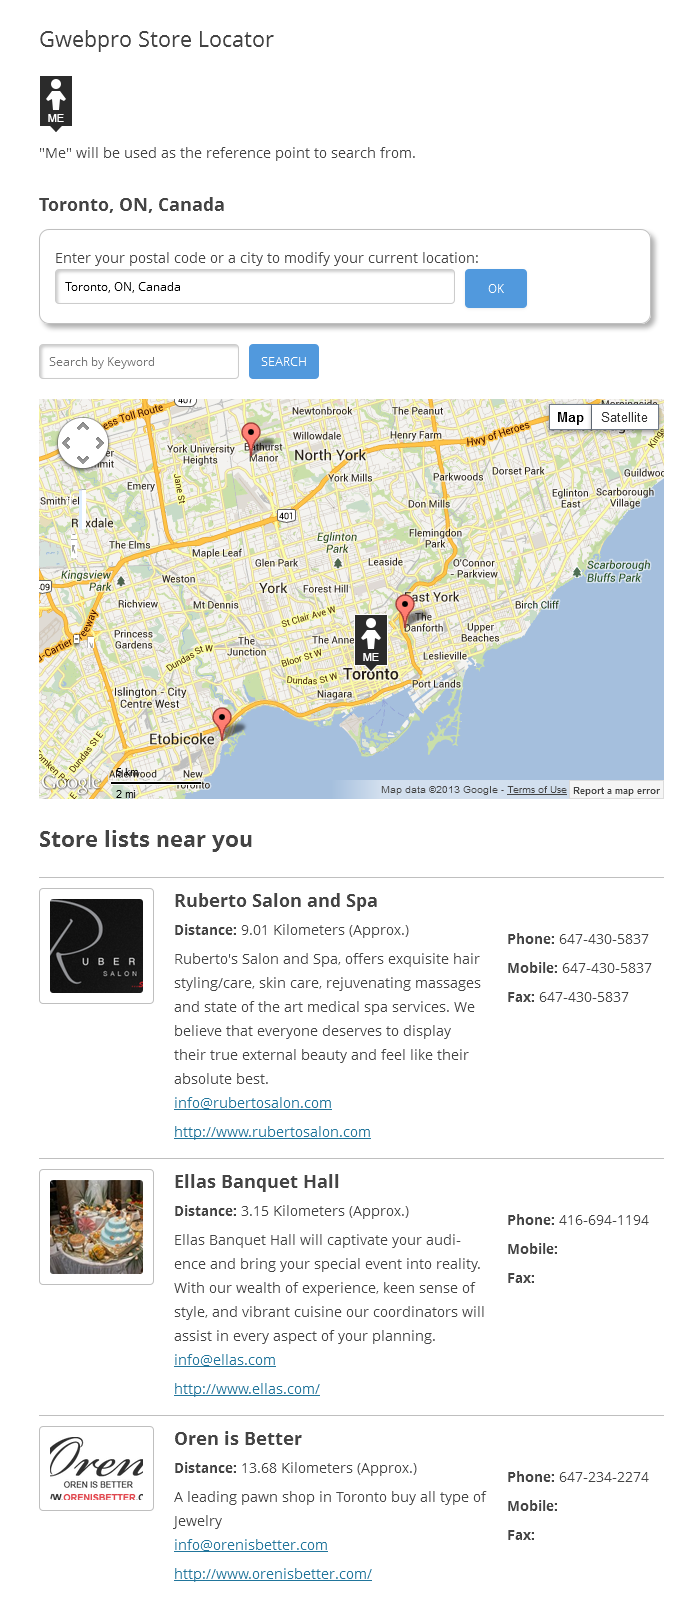 gwebpro-store-locator screenshot 1